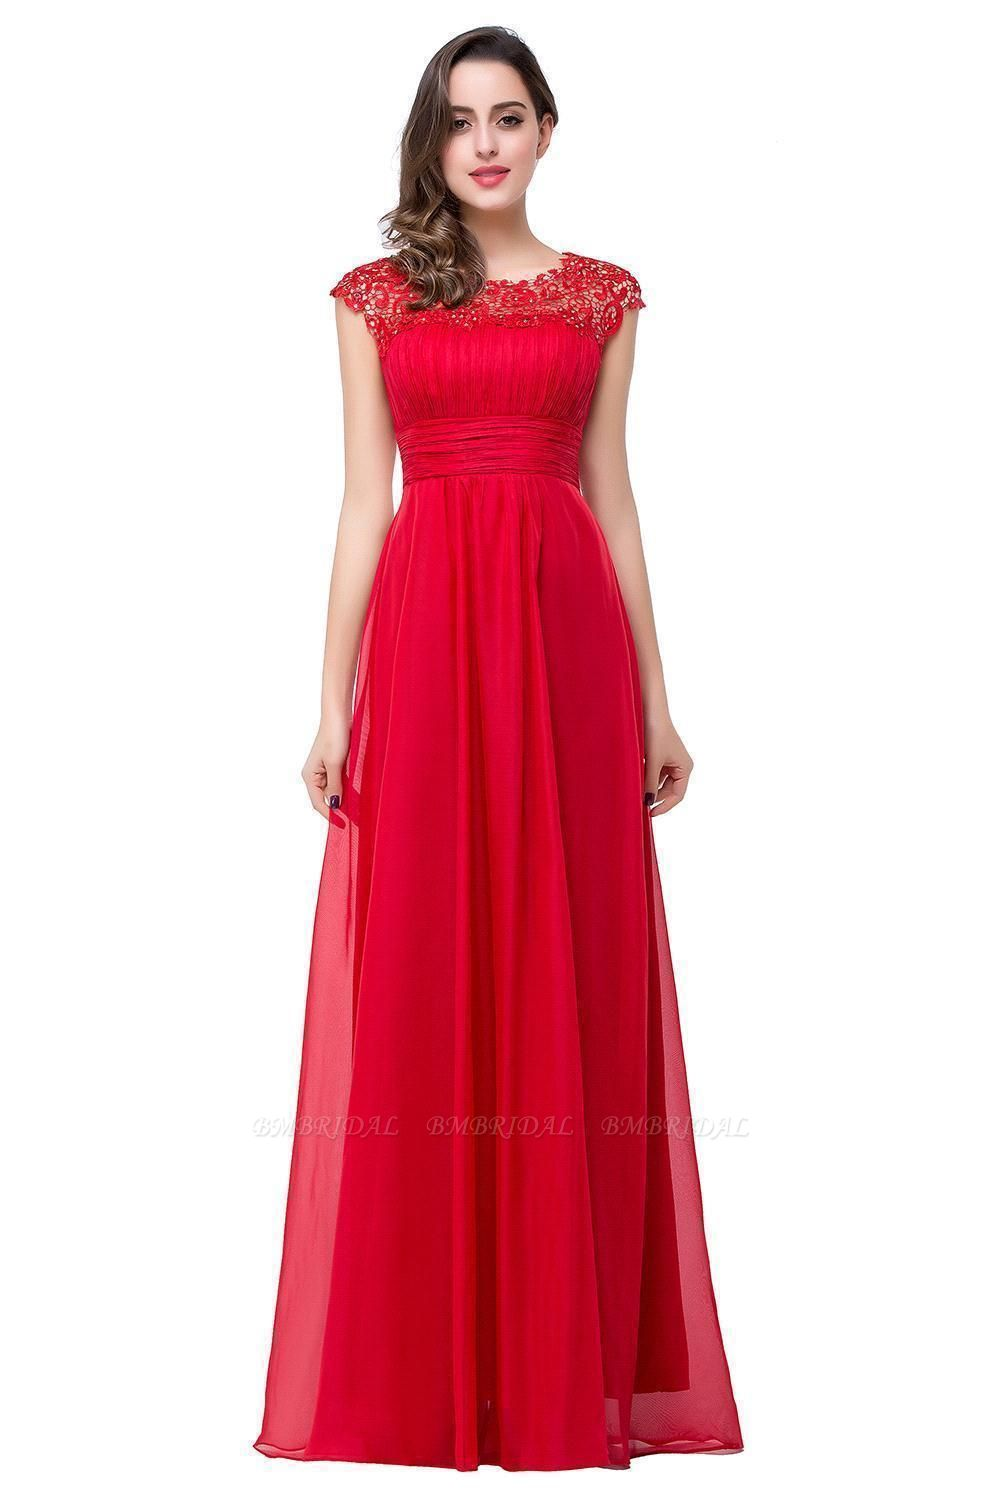 Affordable A-Line Jewel Red Chiffon Lace Bridesmaid Dress In Stock